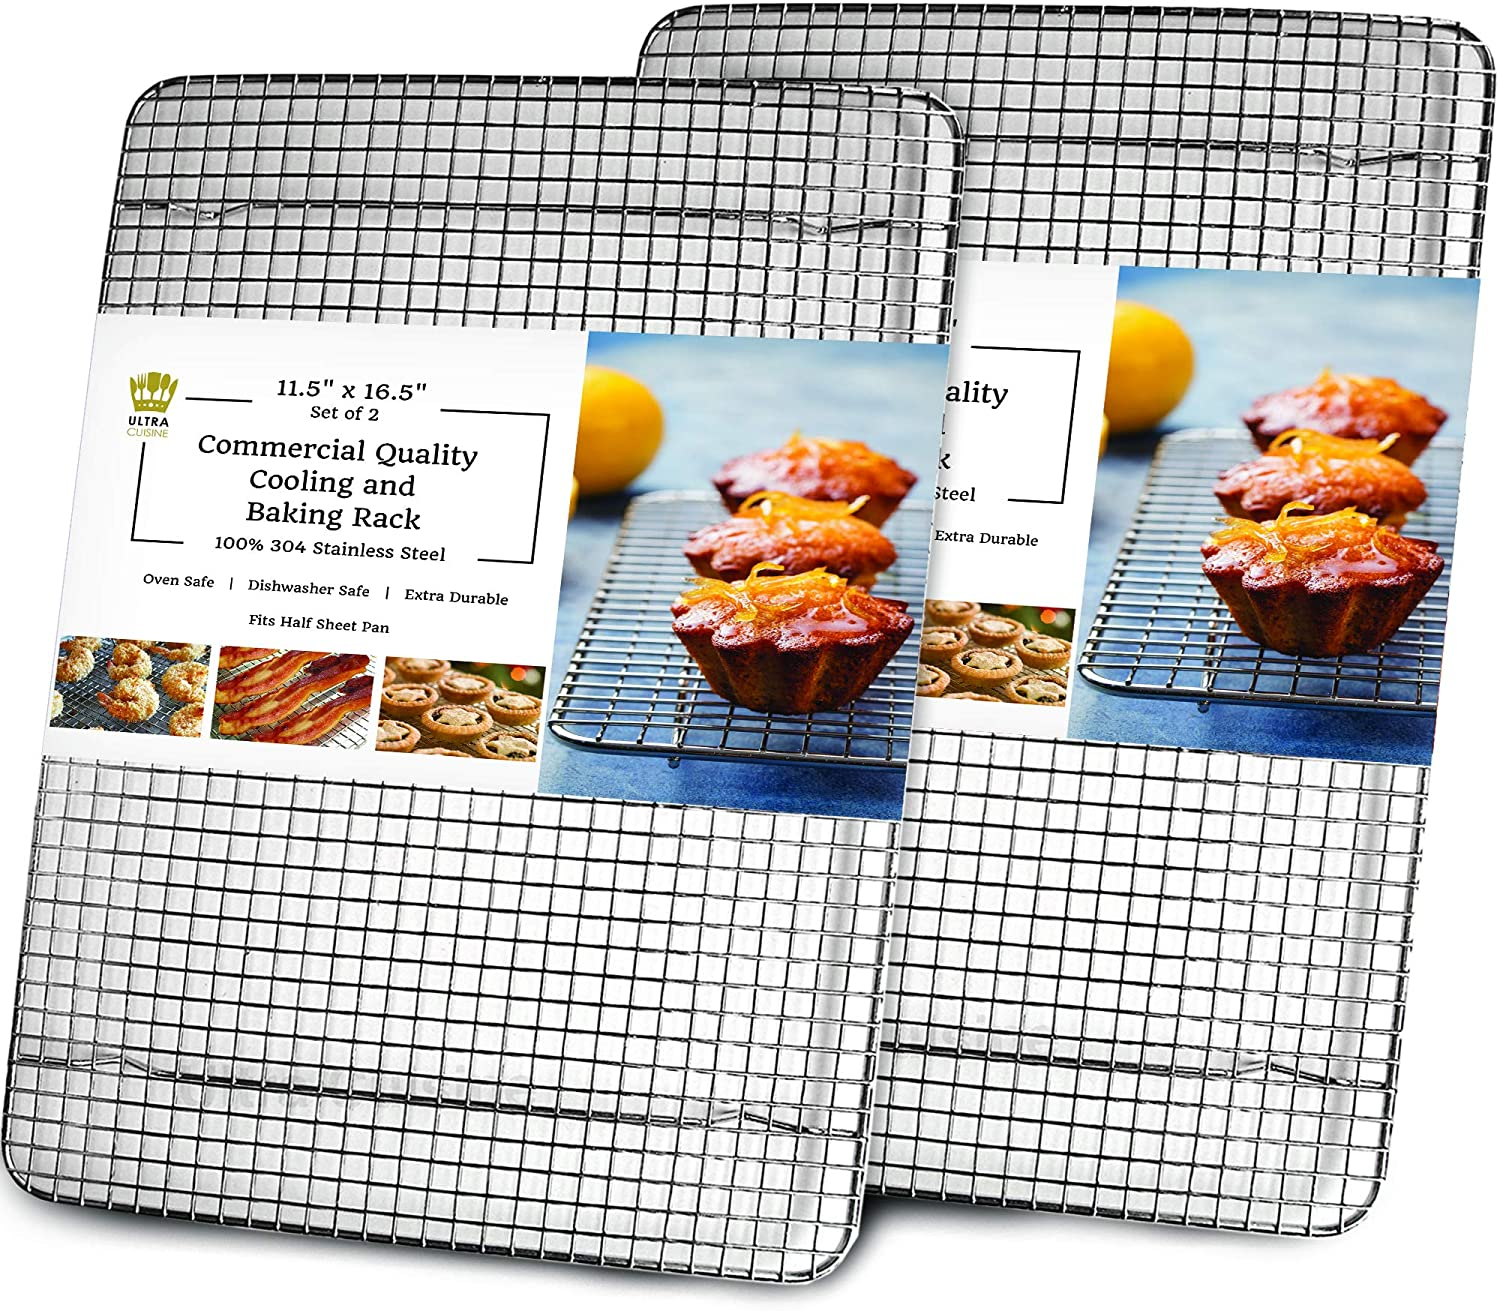 "Cooling, Baking & Roasting Wire Racks for Sheet Pans - 100% Stainless Steel Metal Racks for Cooking - Dishwasher Safe, Rust Resistant, Heavy Duty (11.5"" x 16.5"" - Set of 2)"